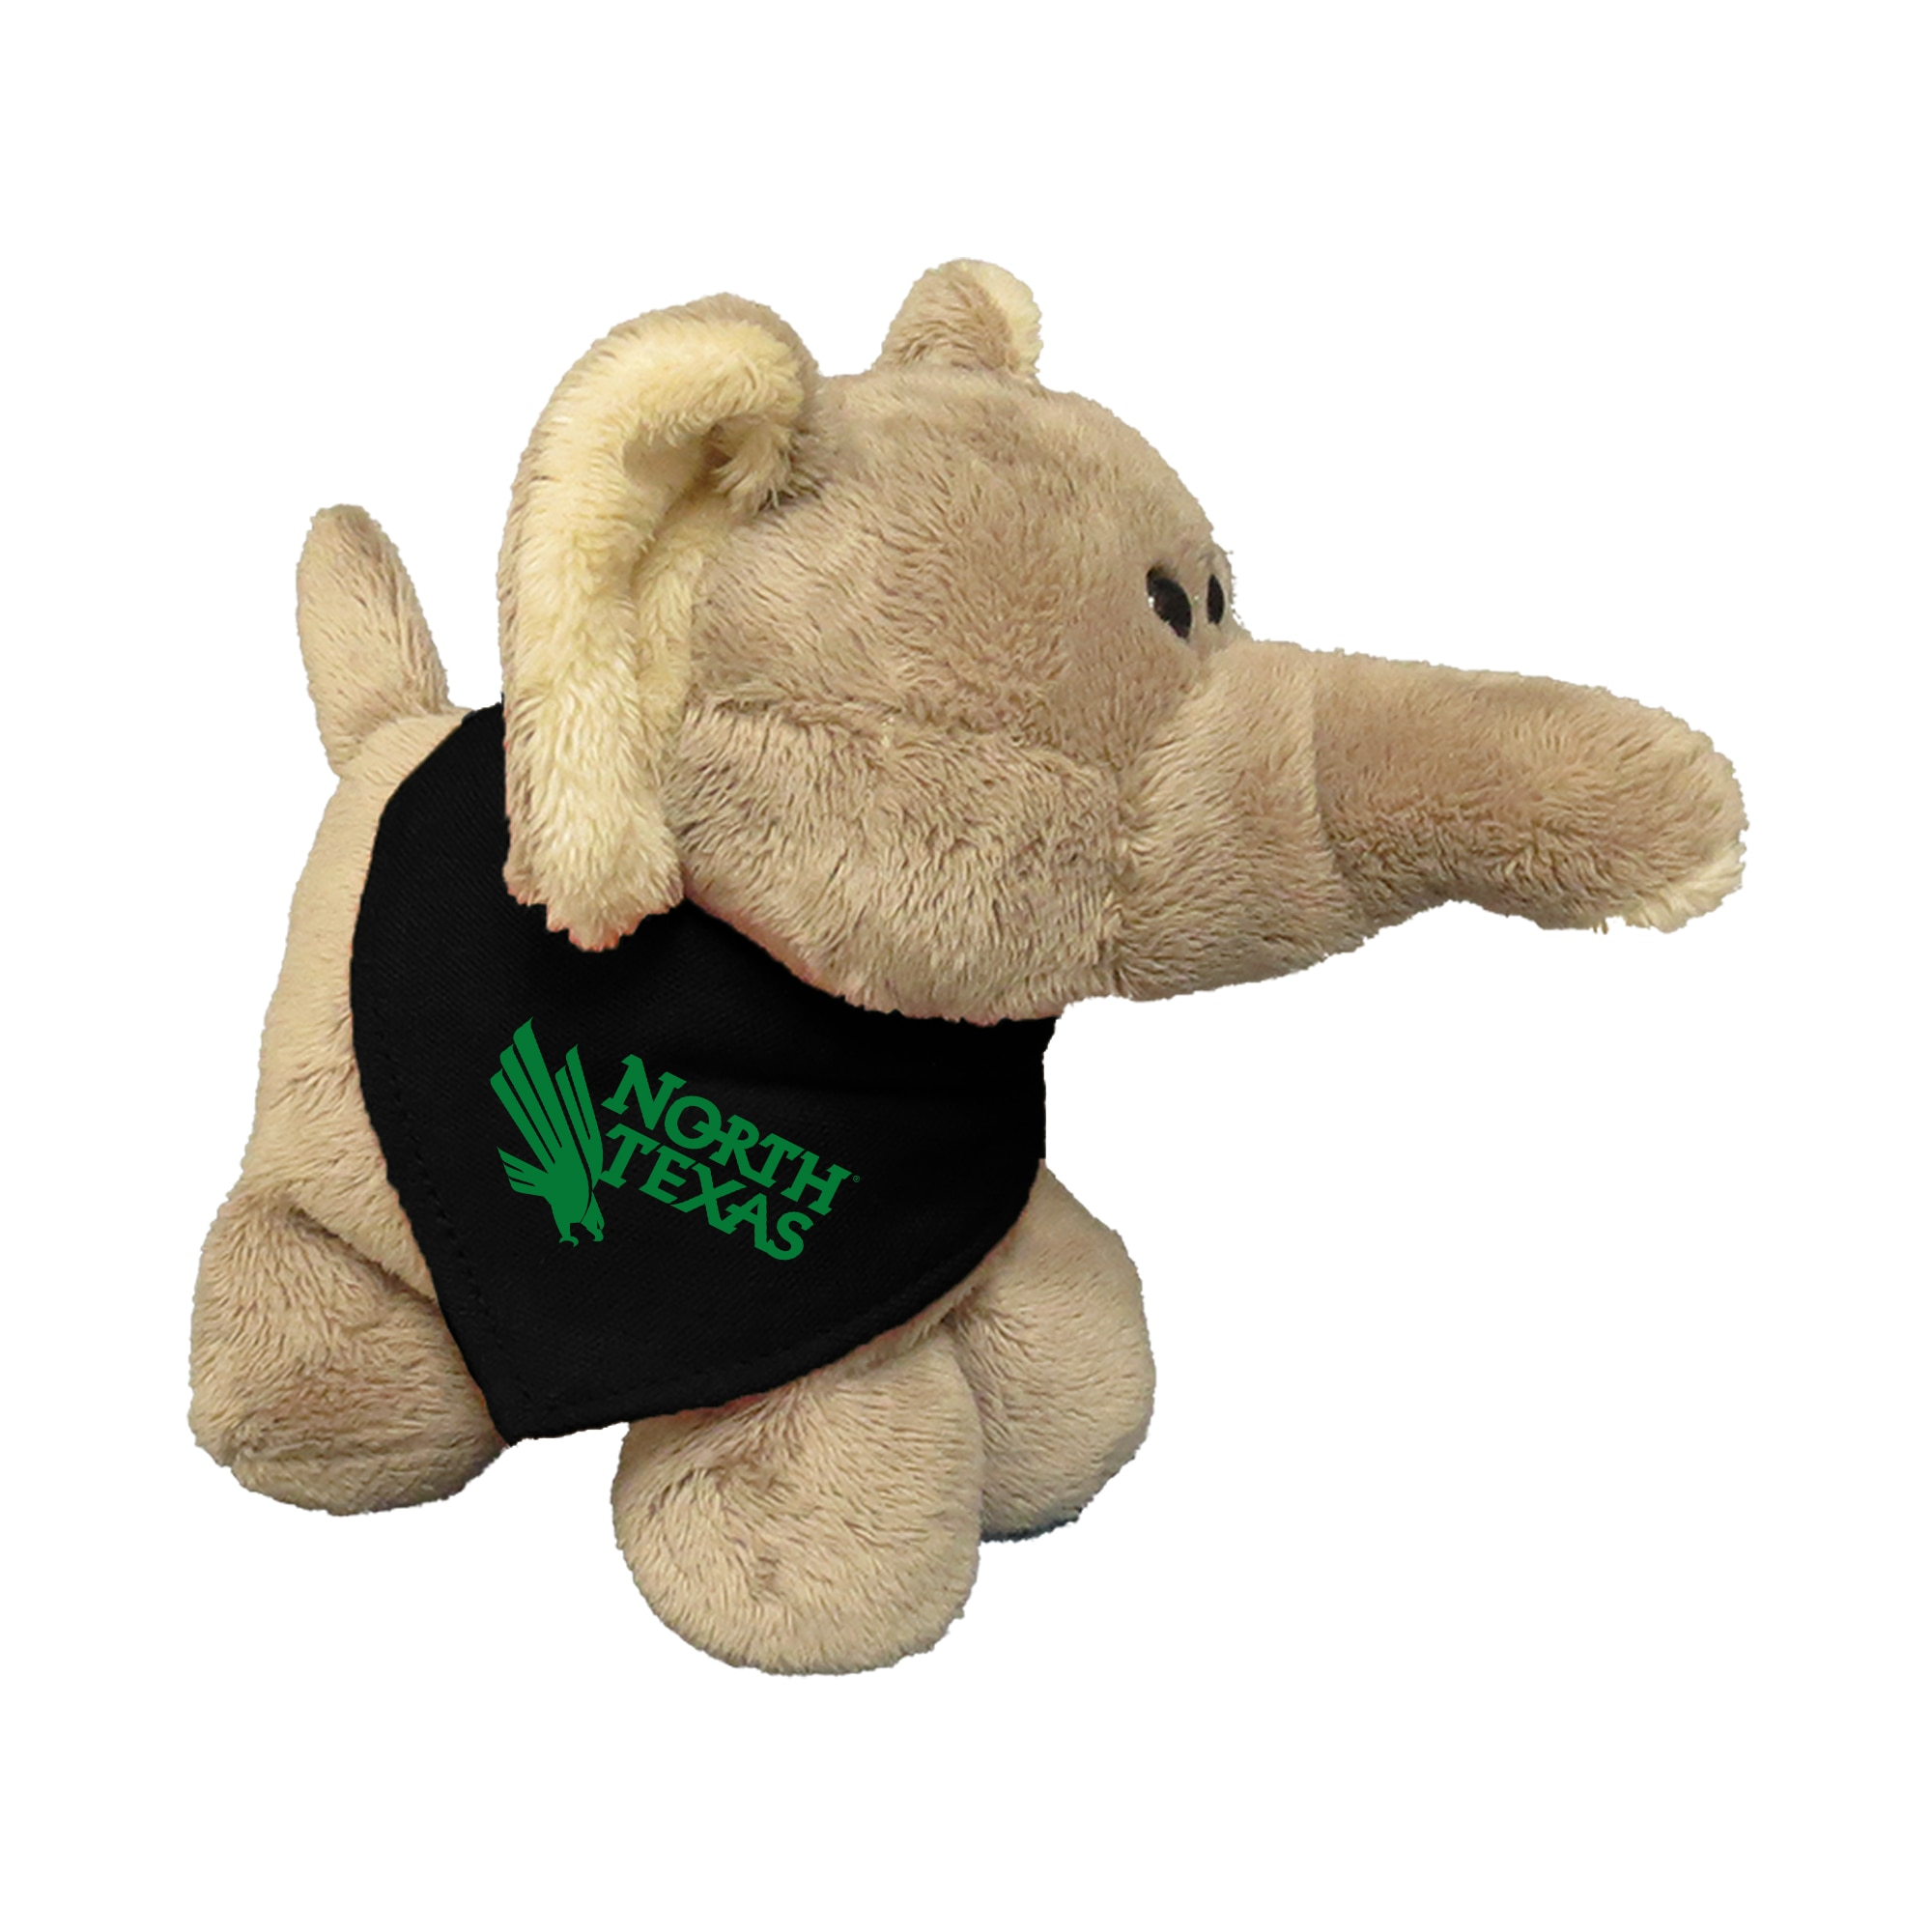 University of North Texas 6in Plush Elephant Short Stack with Bandana